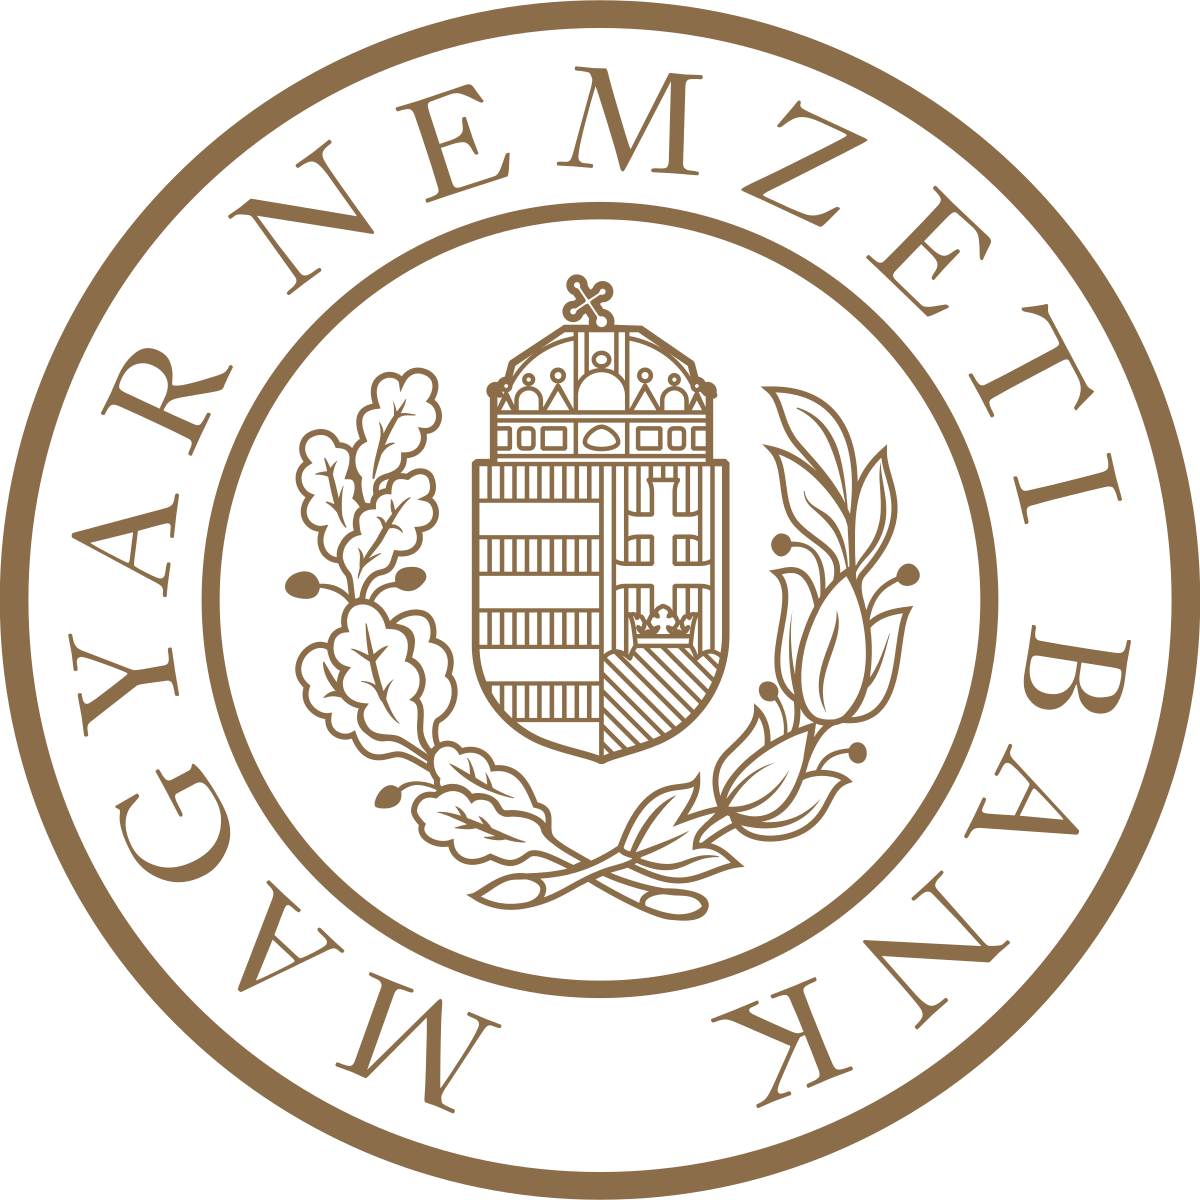 The Central Bank of Hungary logo